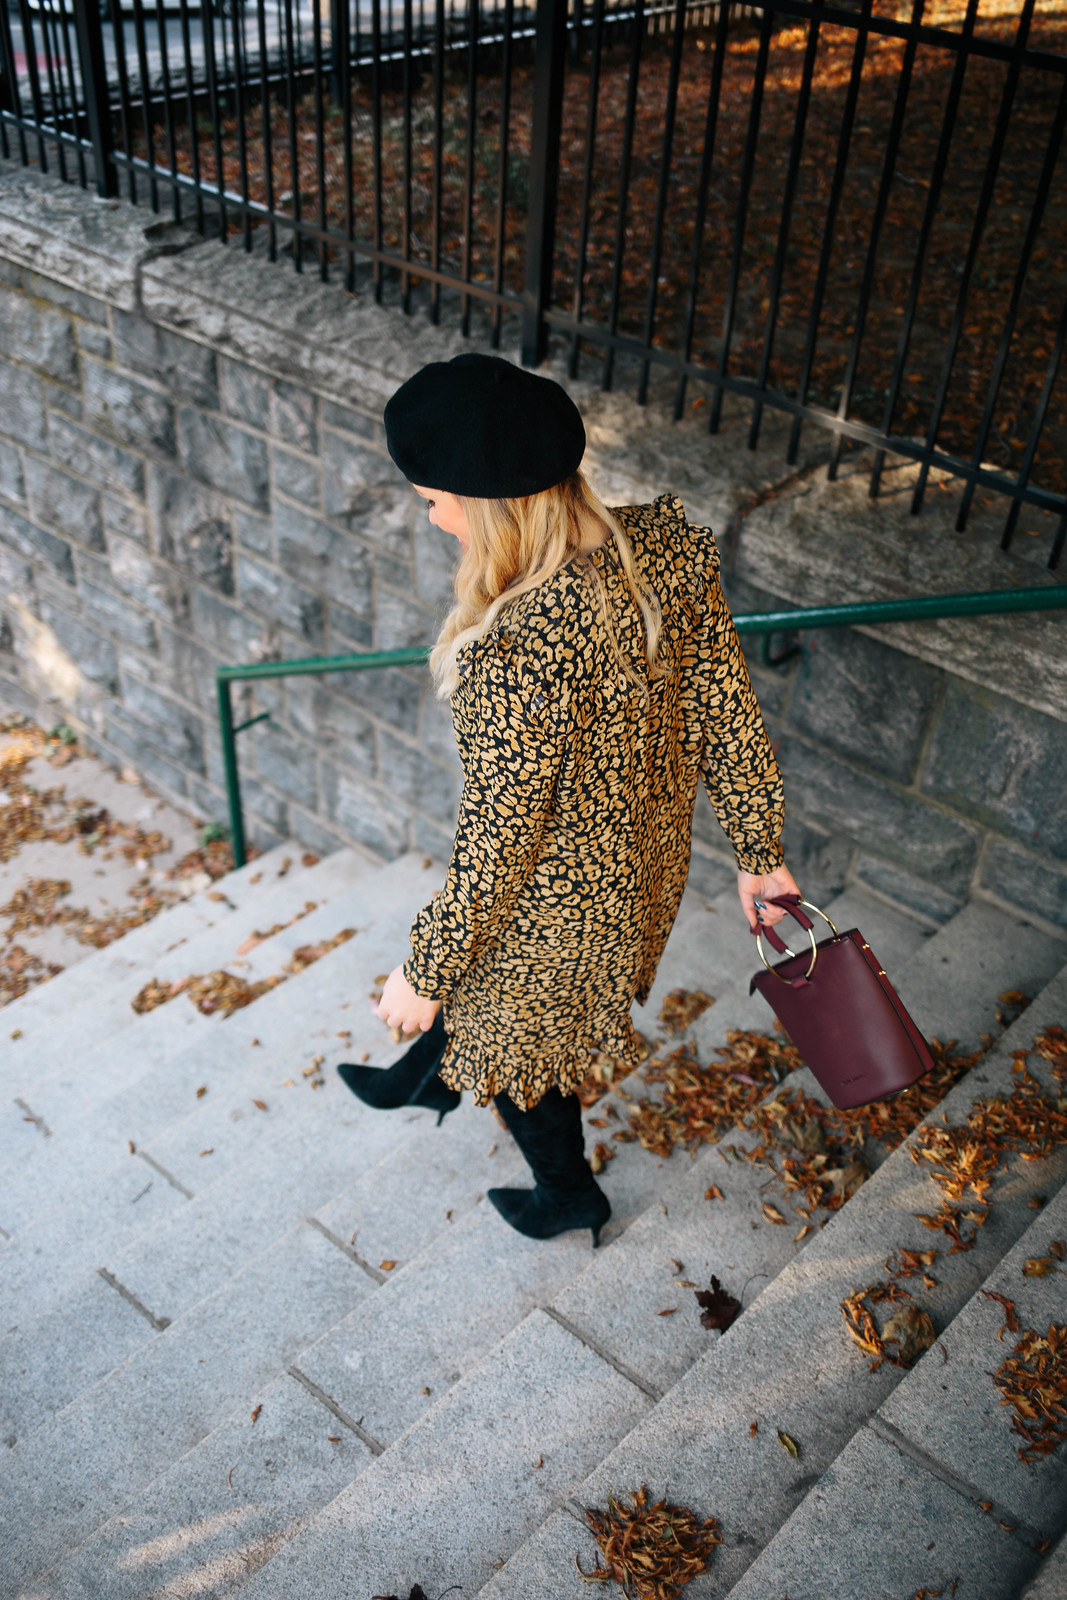 Leopard Ruffle Dress Black Beret Fashion Blogger Style Outfit